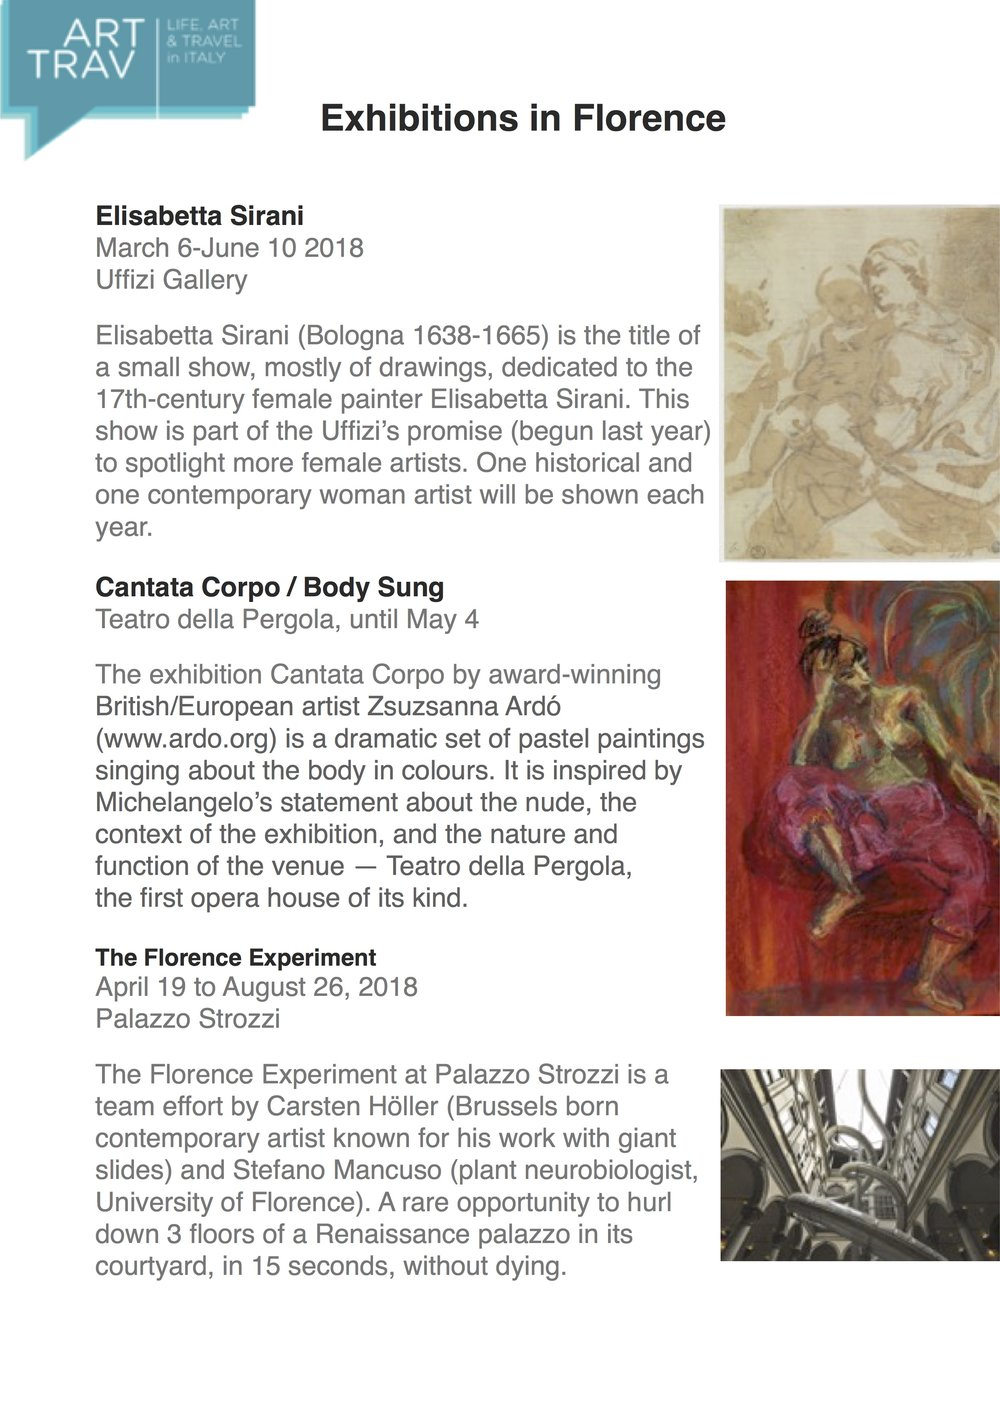 18 IT Flo Arttrav exhibitions Cantata Corpo Ardo.jpg